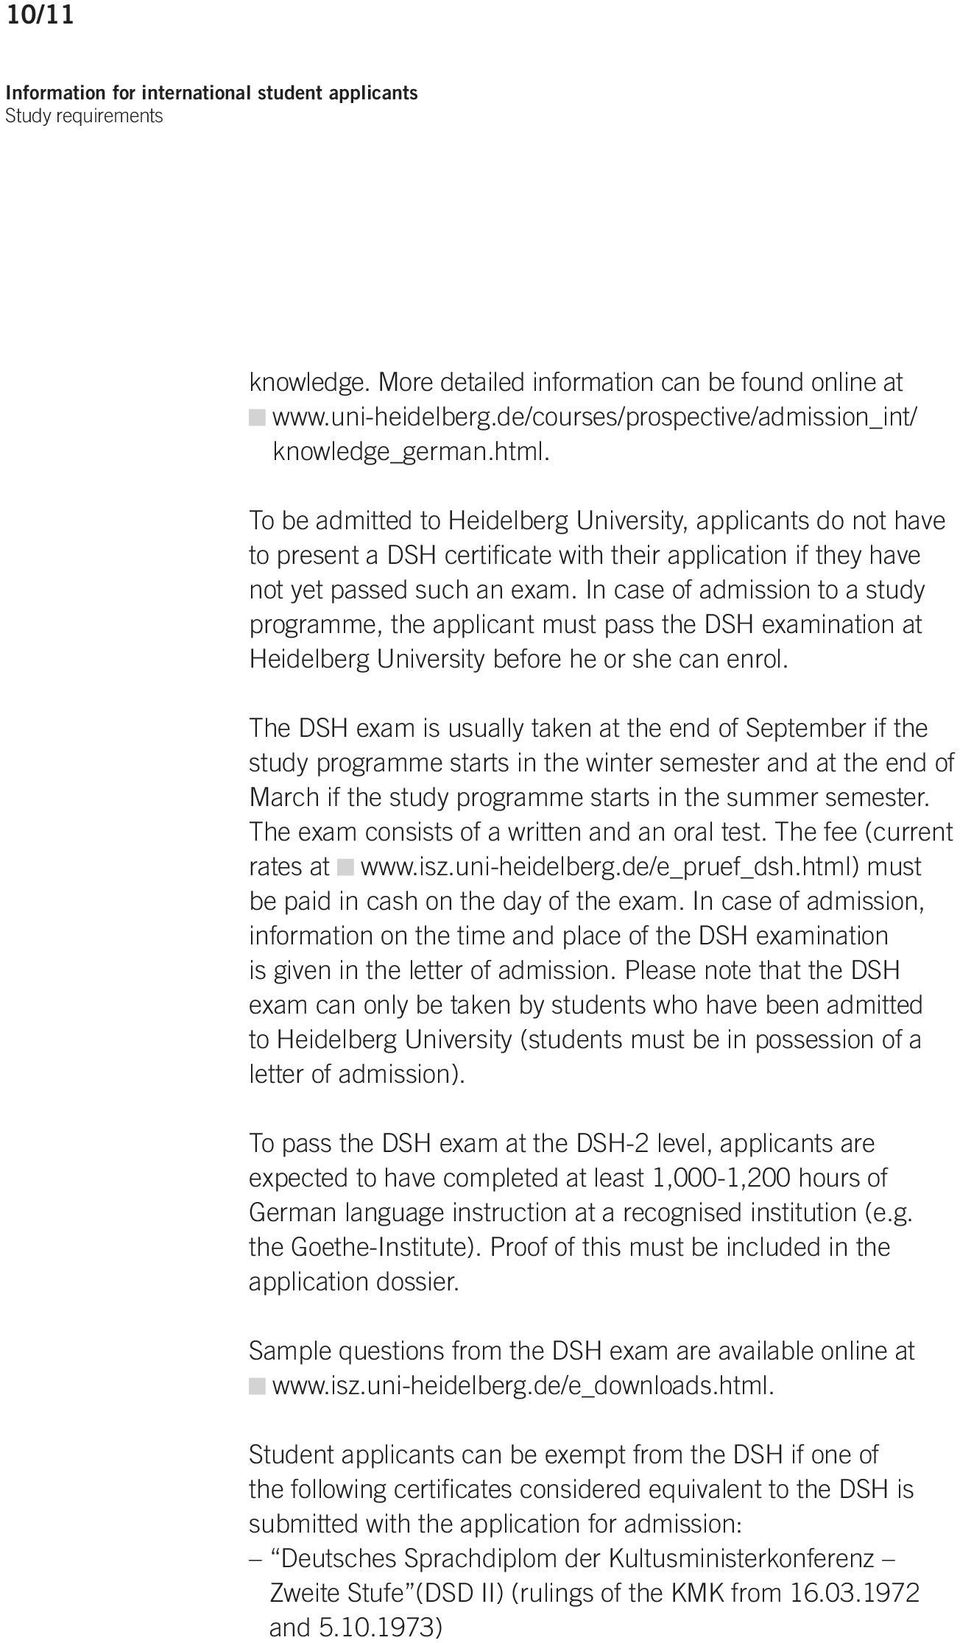 To be admitted to Heidelberg University, applicants do not have to present a DSH certificate with their application if they have not yet passed such an exam.